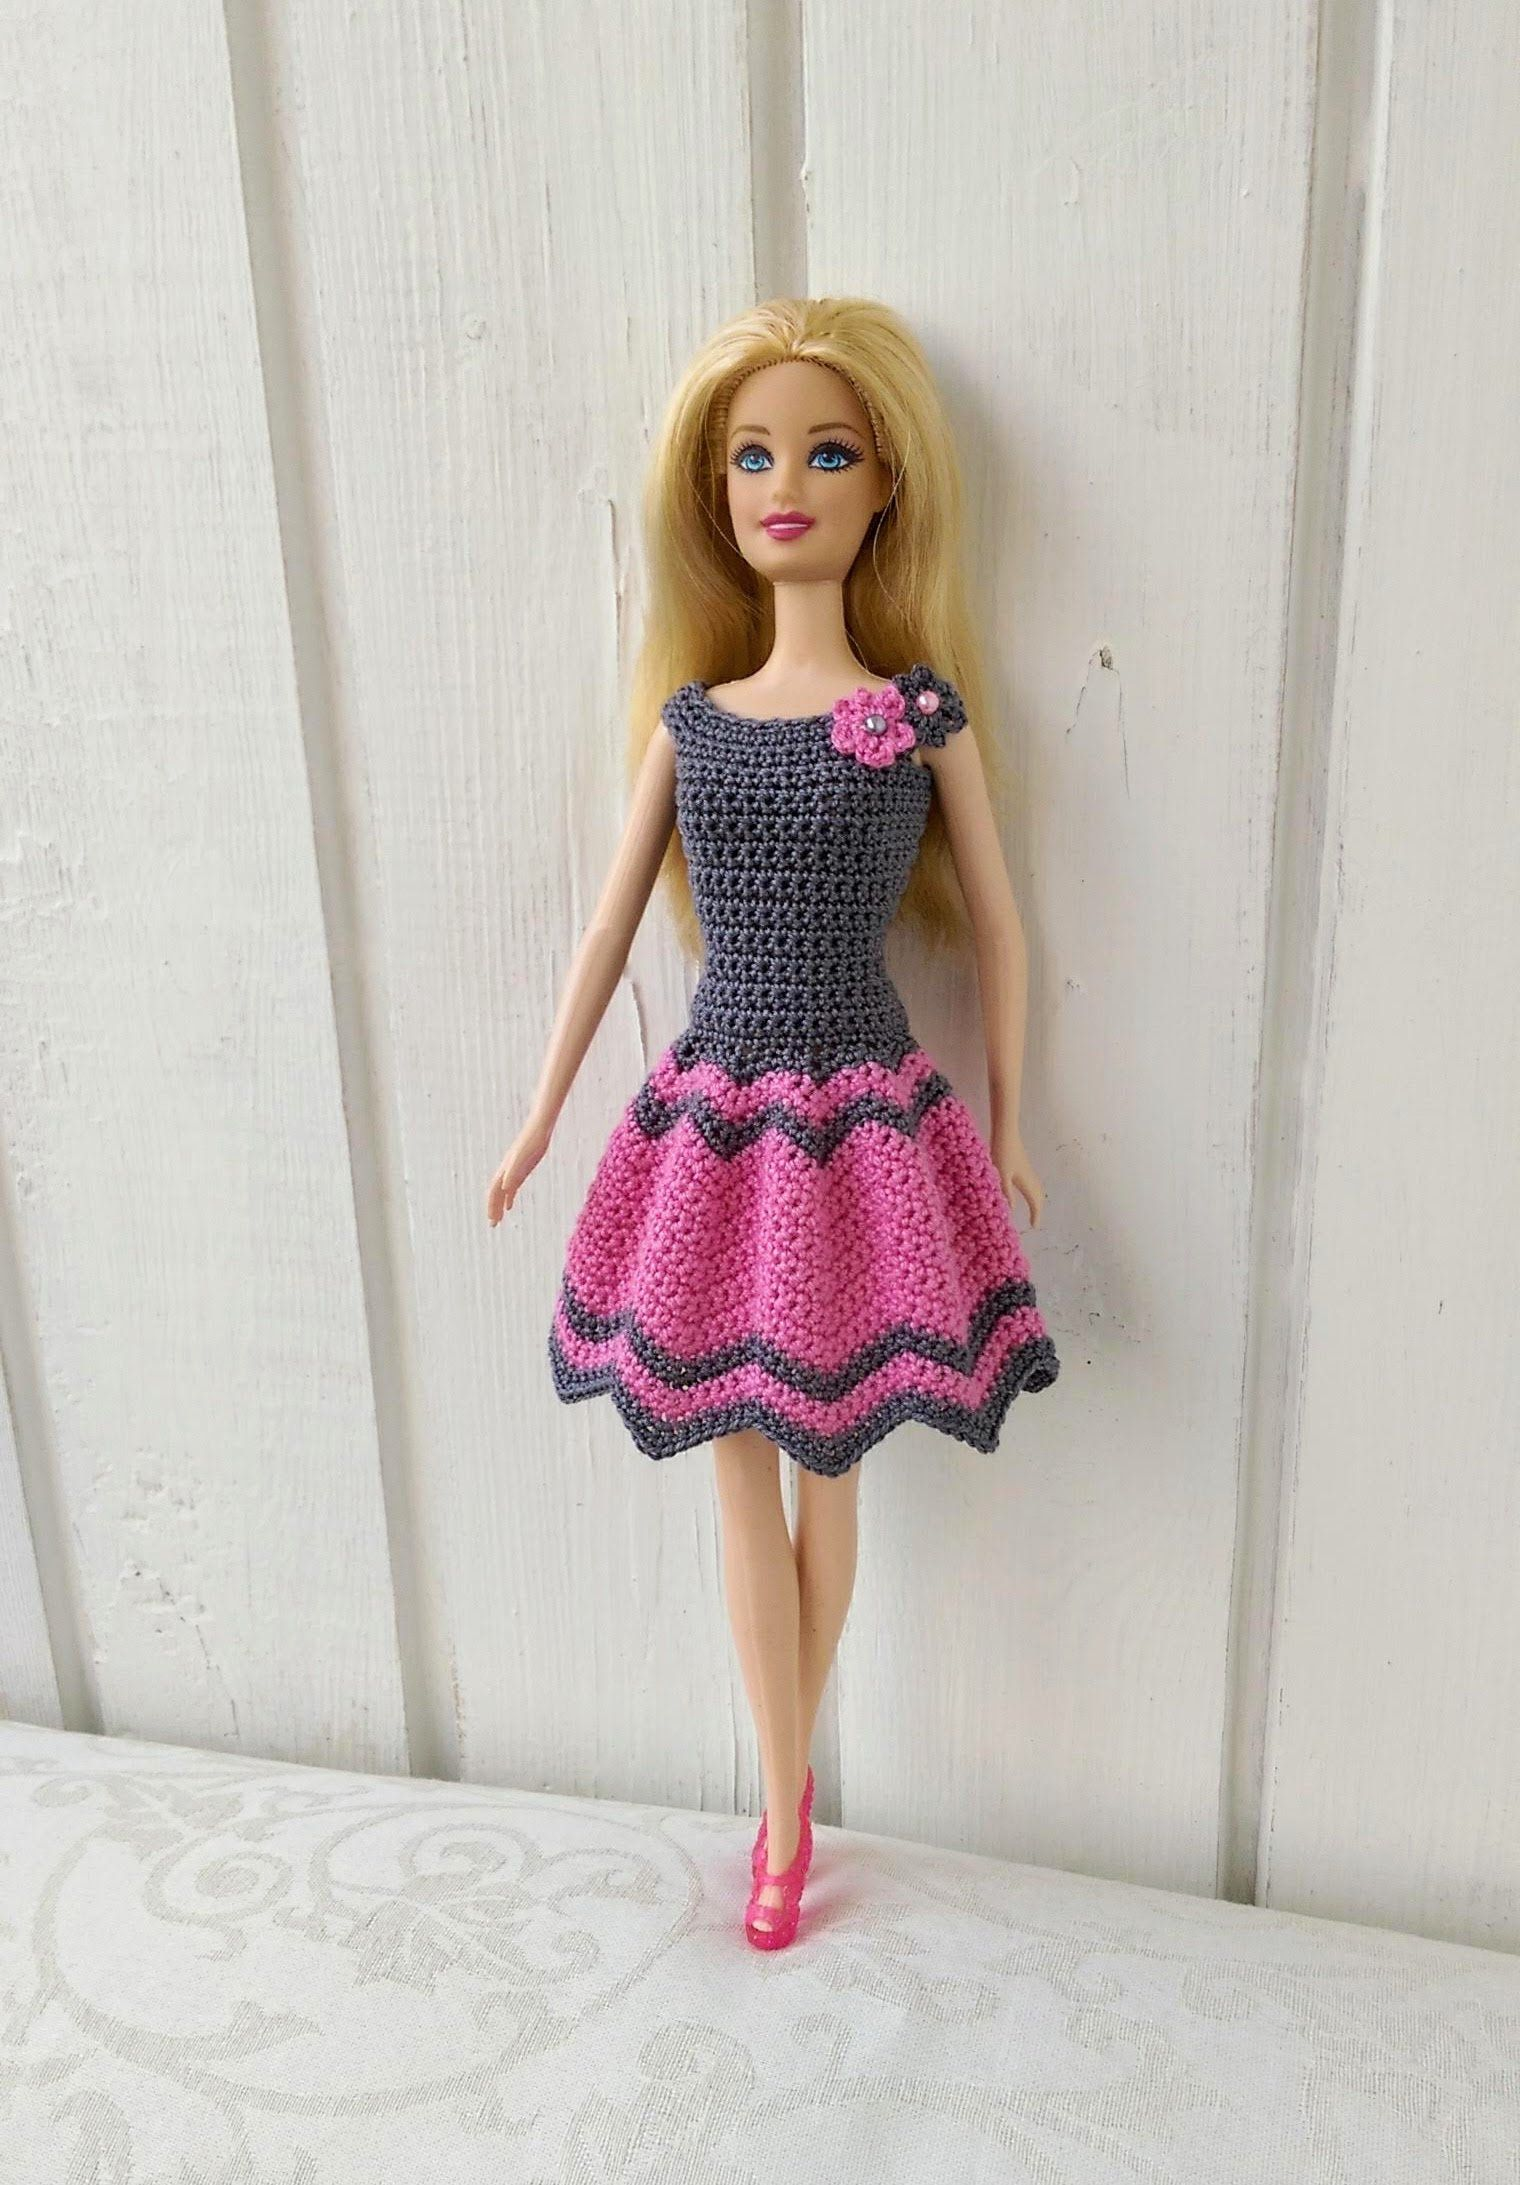 Barbie clothes Barbie Crochet Dress for Barbie Doll